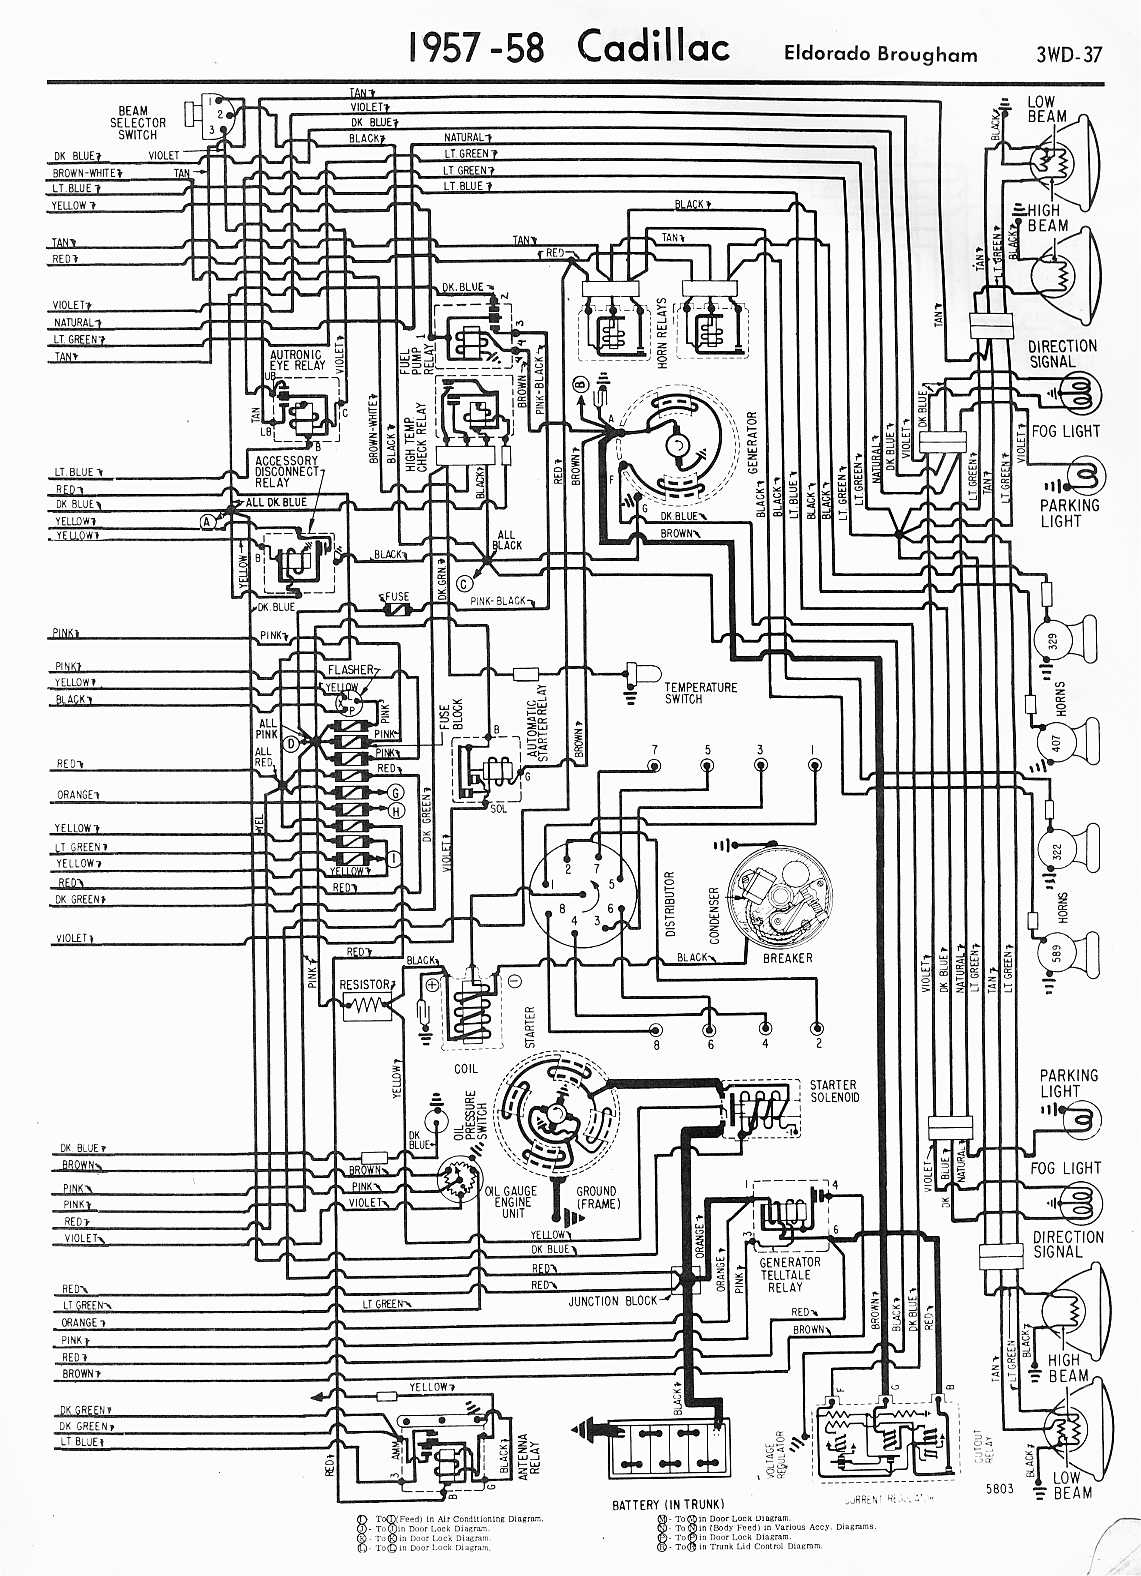 Cadillac Wiring Diagrams : Cadillac eldorado relay diagram free engine